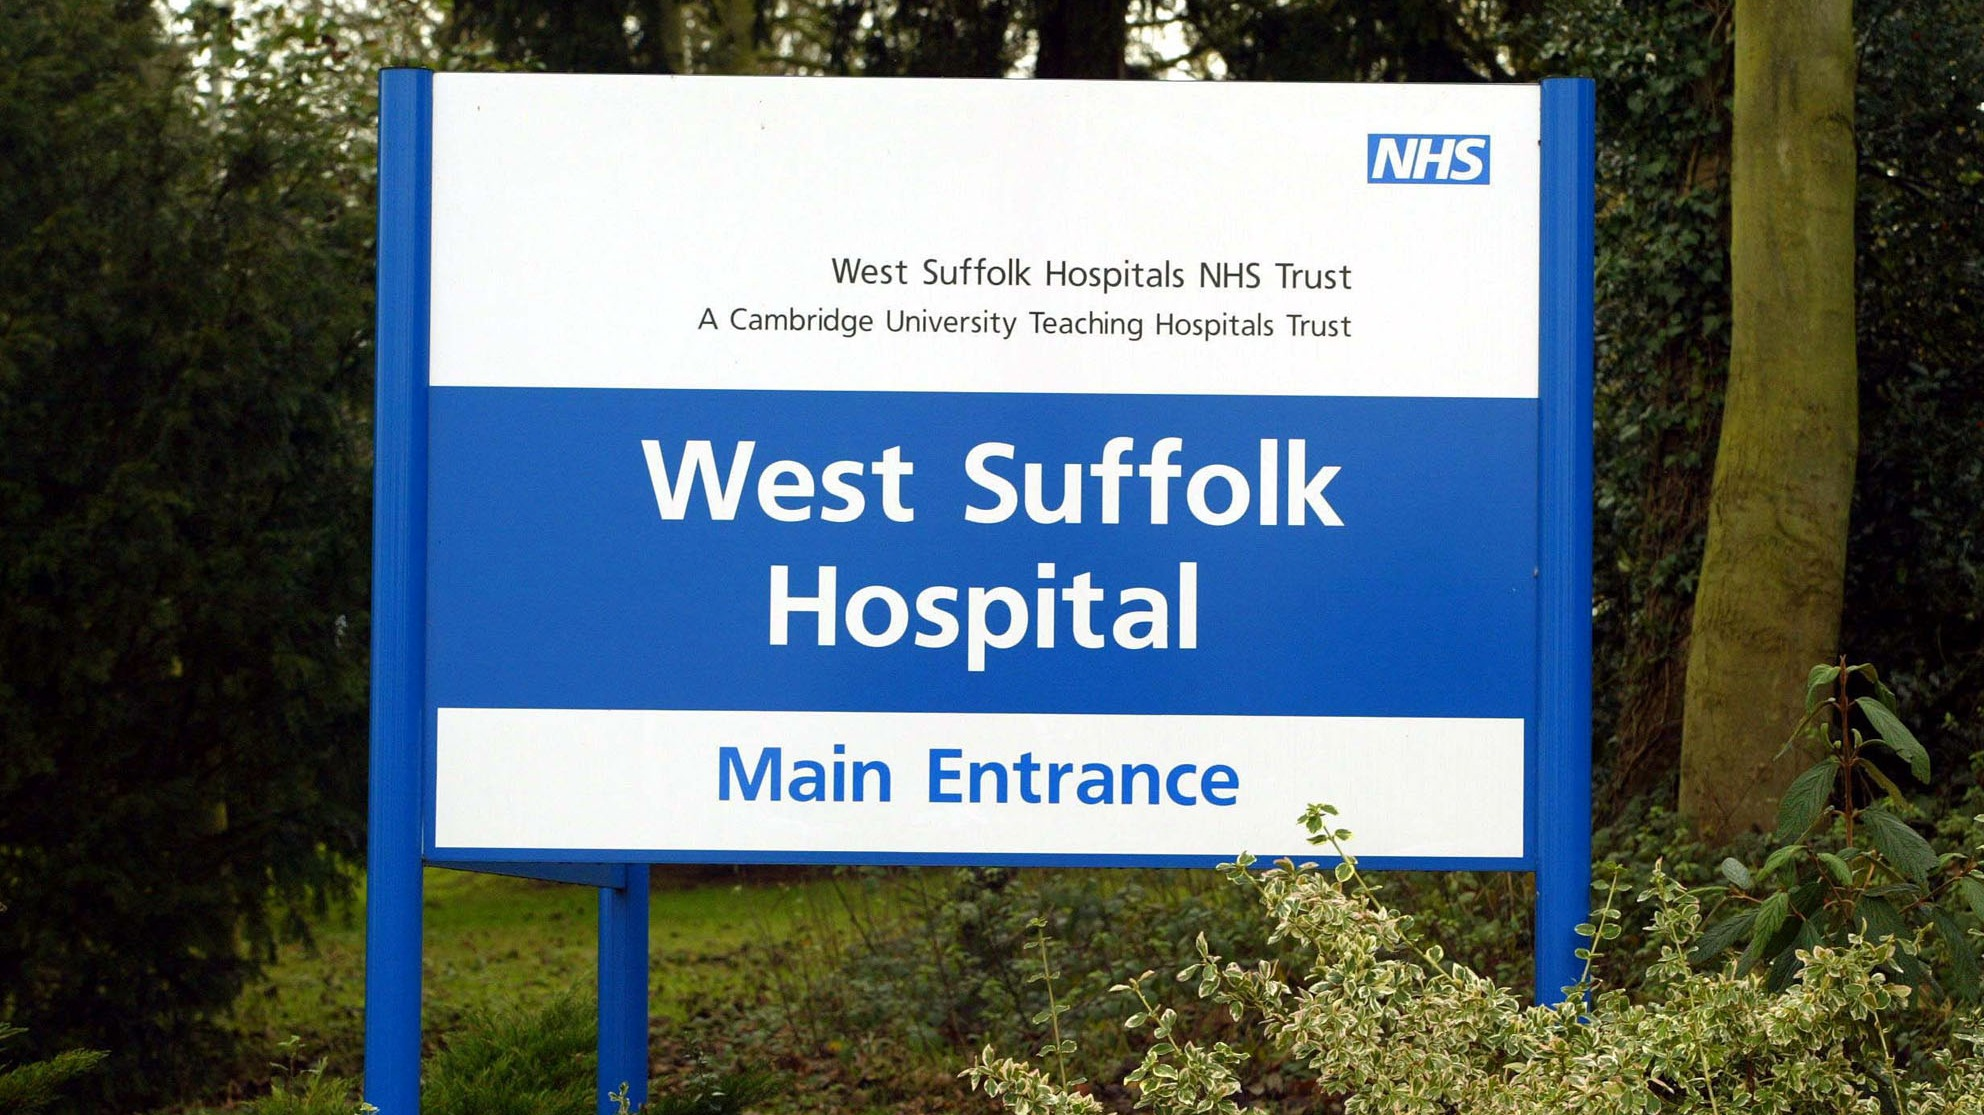 a visit to hospital essay My hospital experience but an unknown illness that caused me to actually go to the hospital if you are the original writer of this essay and no longer.